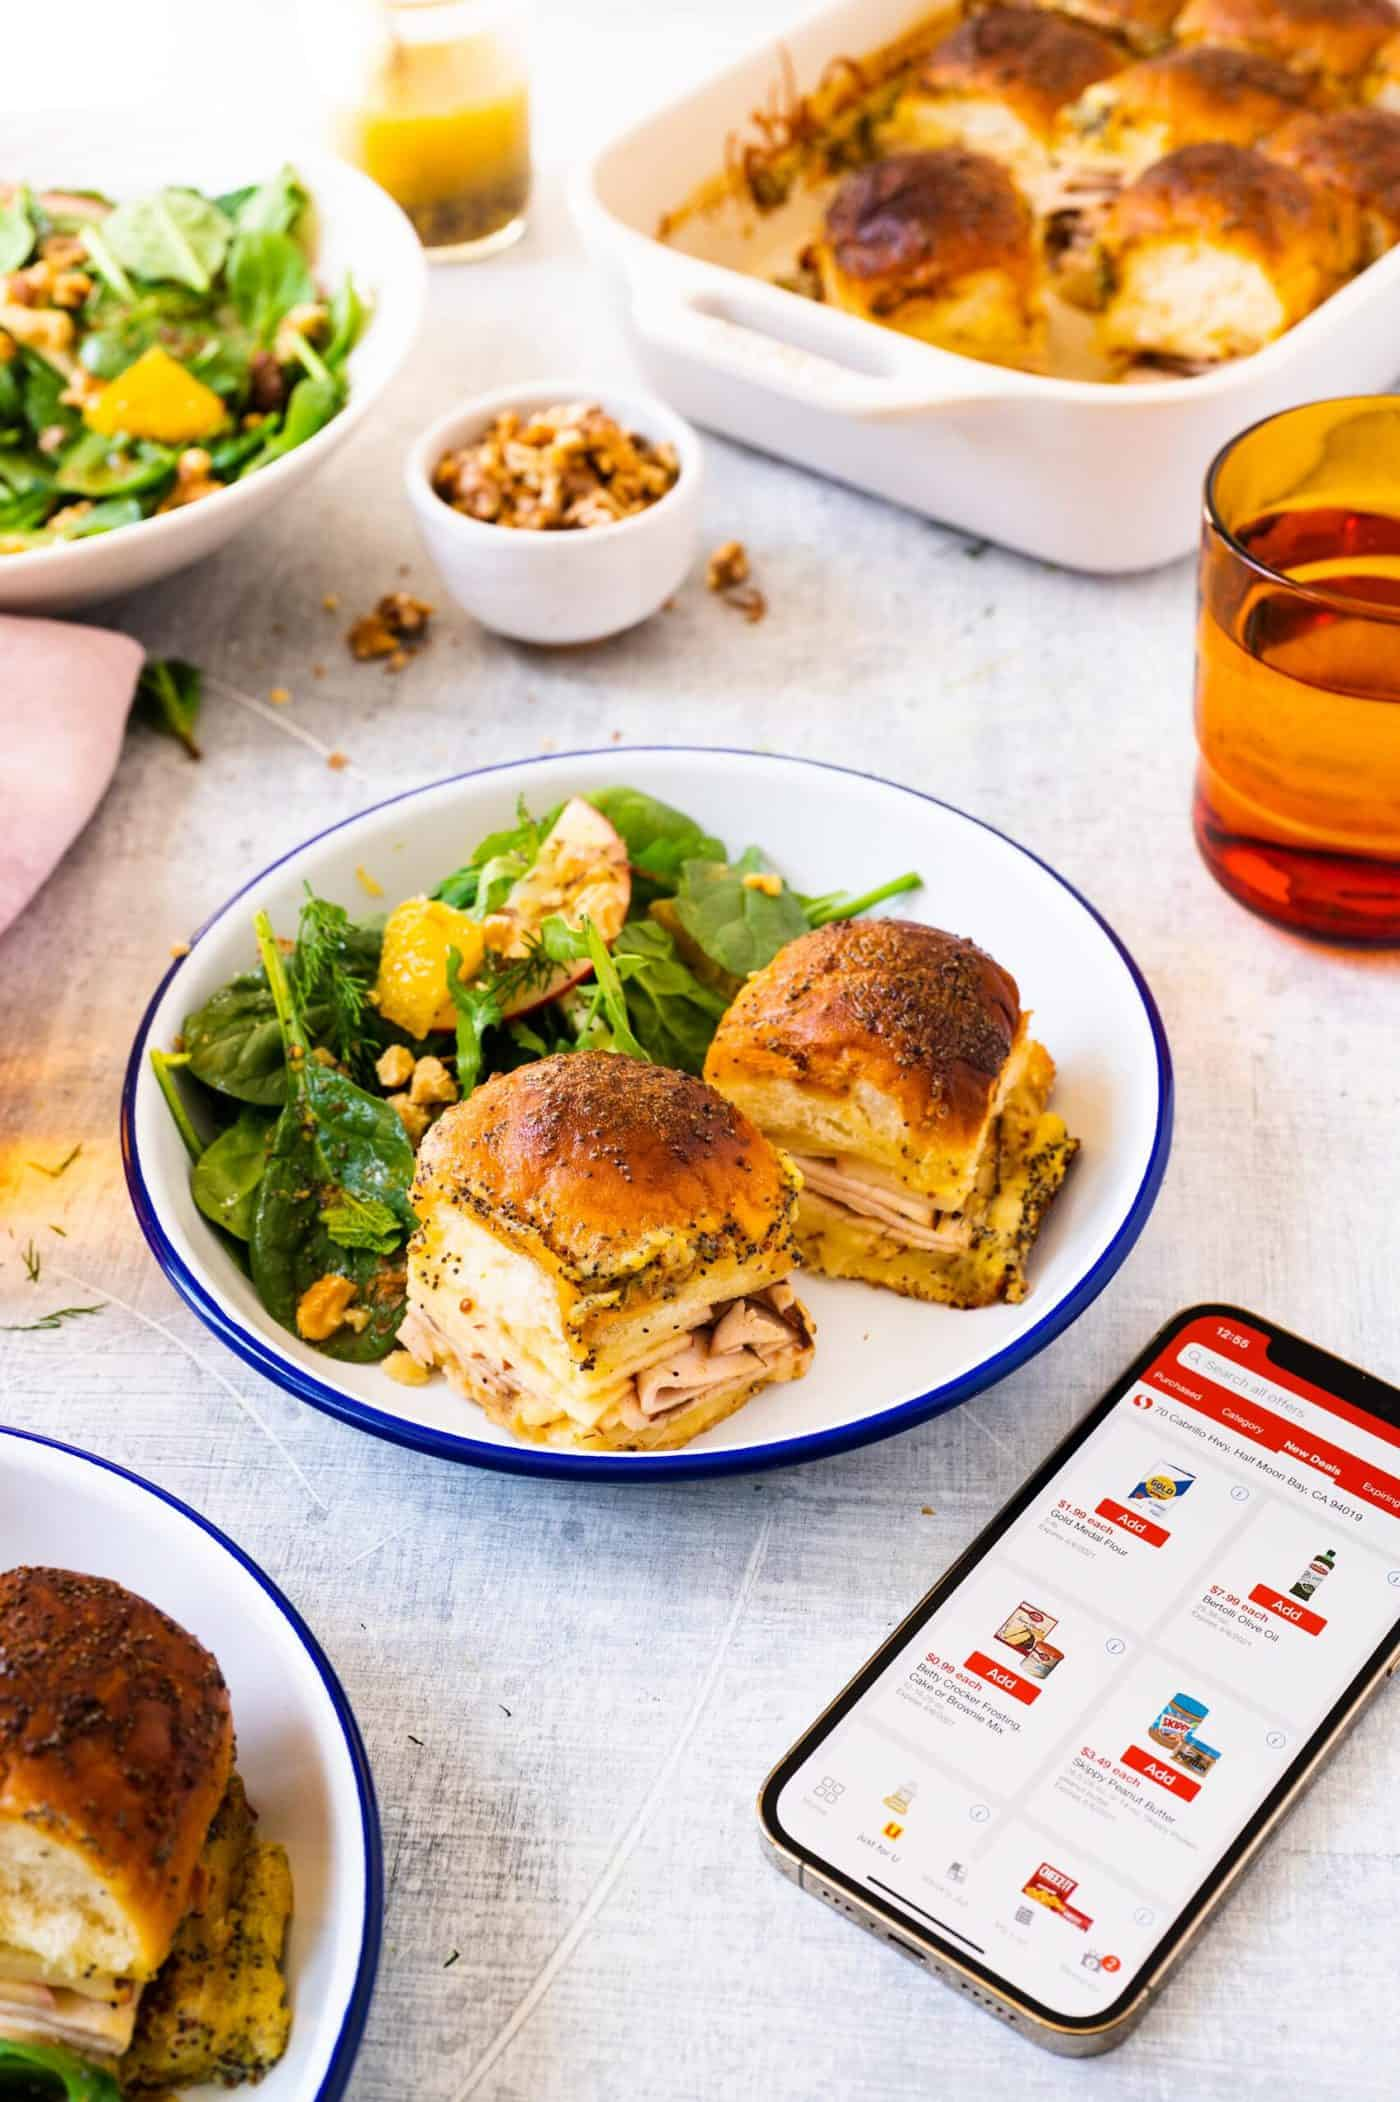 Pig and Quill Baked Smoked Turkey Sliders + Spring Herb Salad Recipe Safeway App